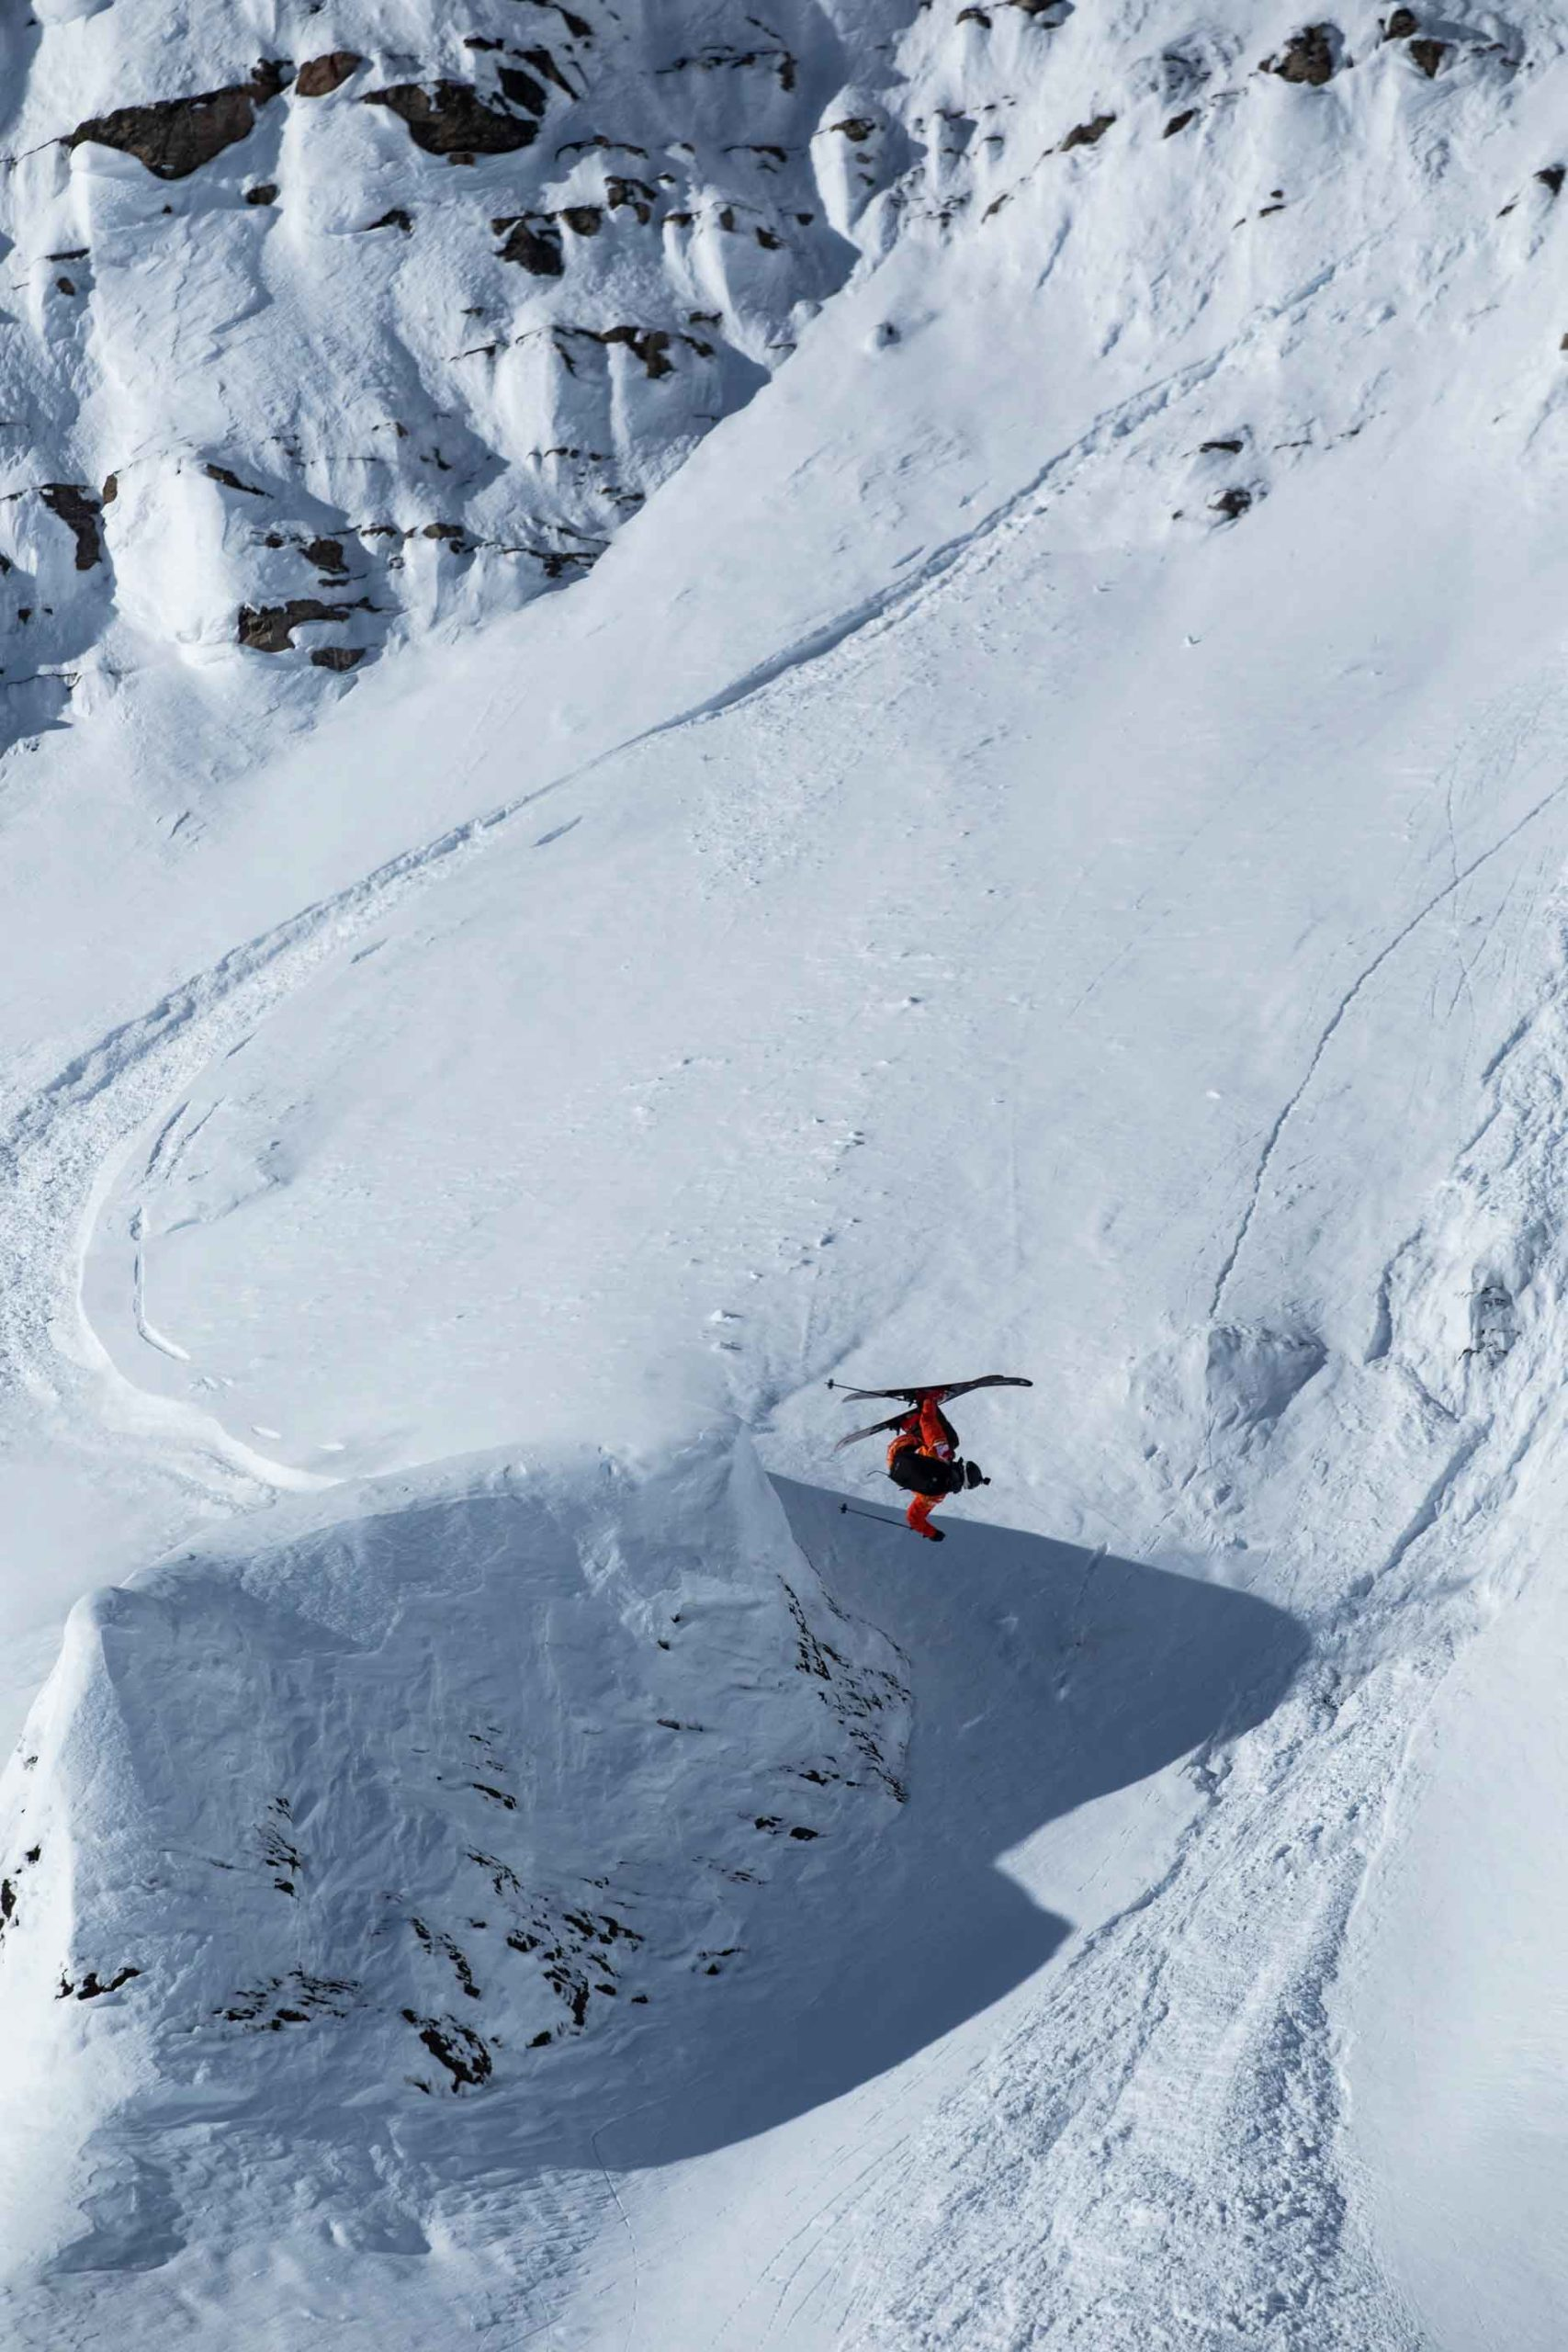 Freeriding at Kicking Horse by Dom Daher